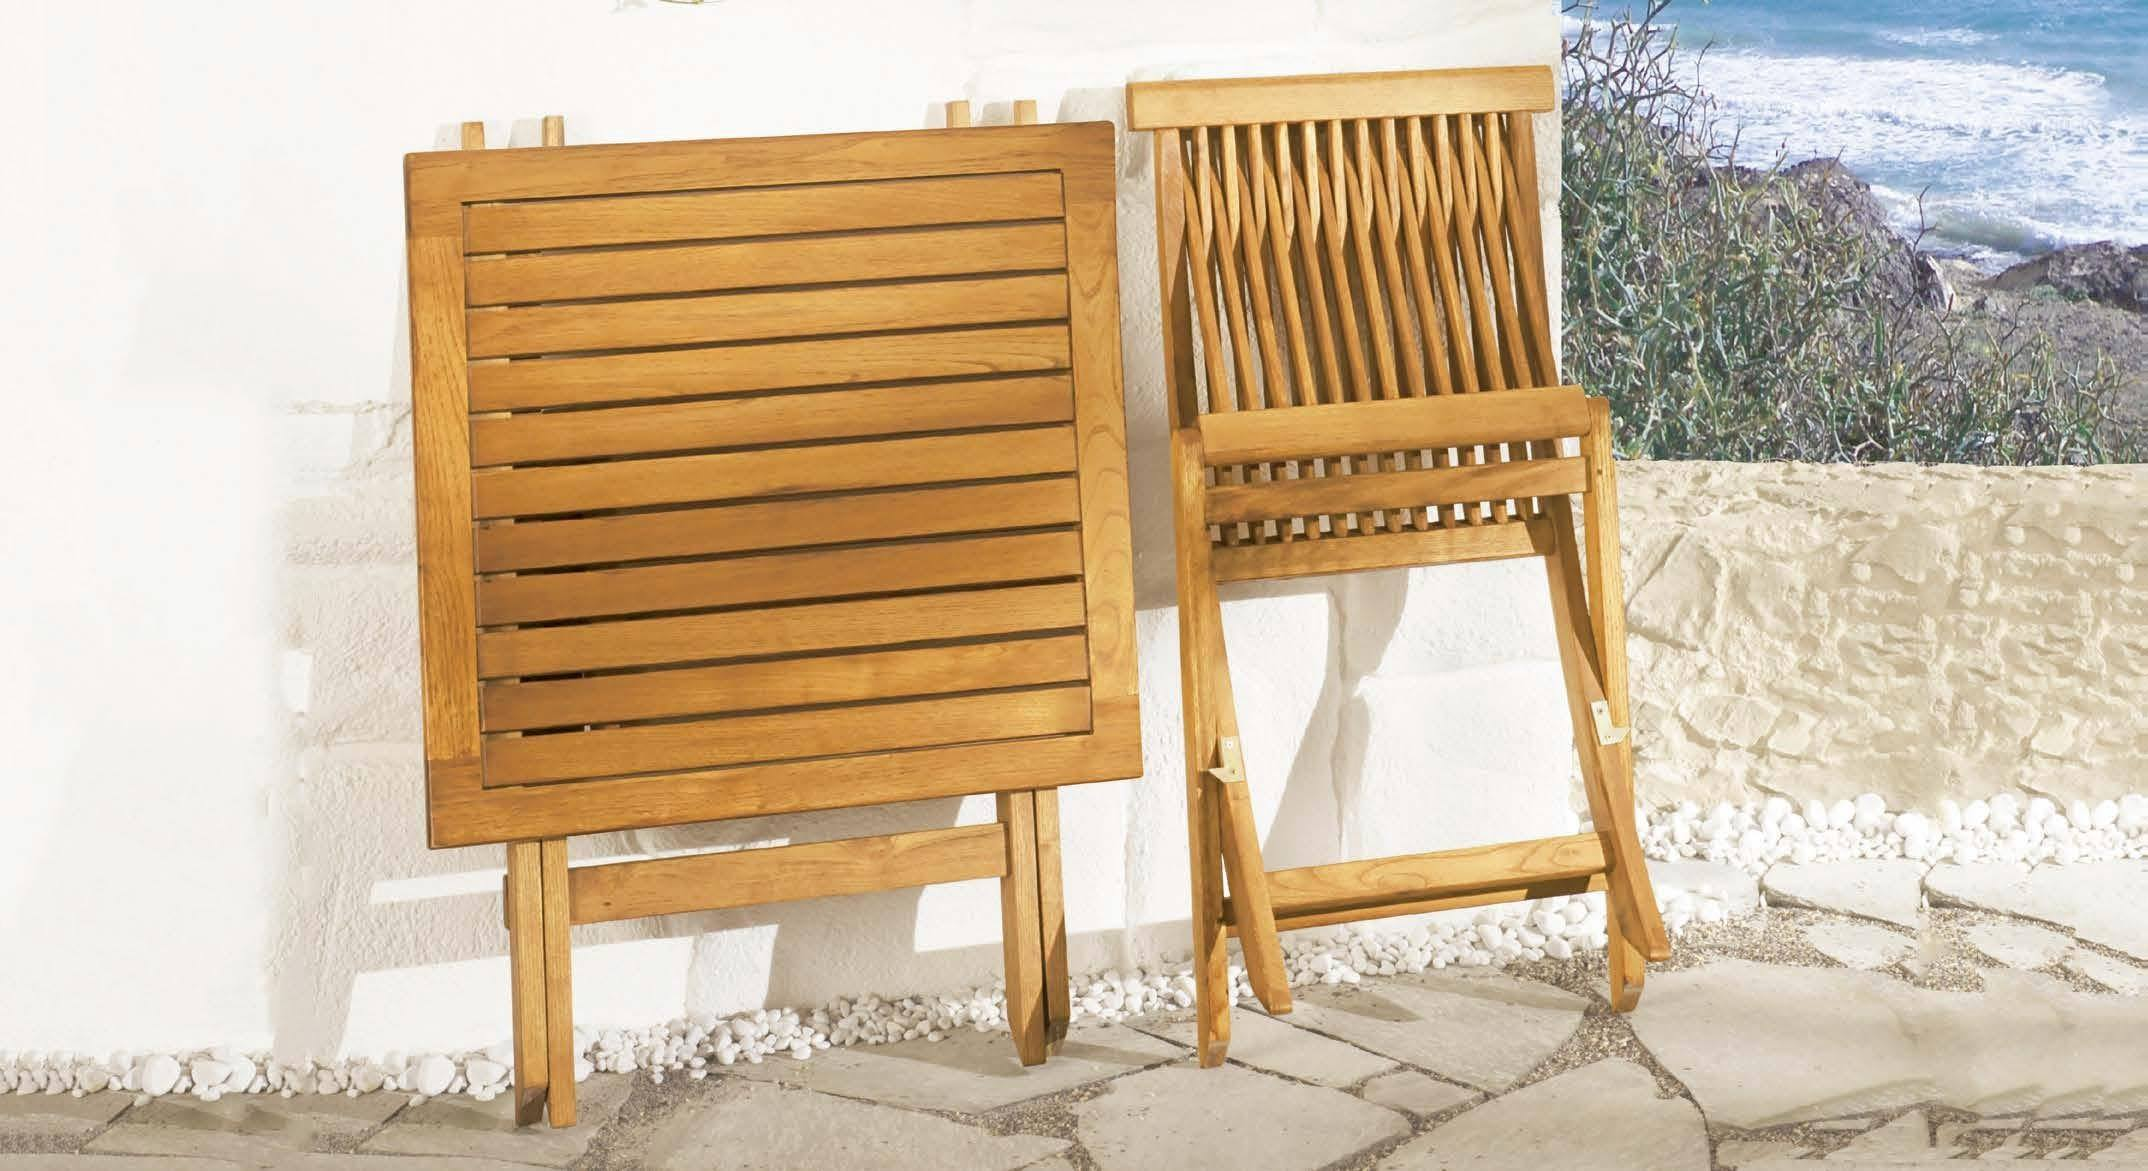 <p>Outdoor Furniture – Wooden Dining Collection Portofino Table & Chair.</p> <p> </p> <p>Potofino Furniture – Stylish, Elegant Foldable Chair and Table.</p> <p> </p> <p>Ideally suited for small intimate spaces or terraces such as atmospheric restaurants, cafés, clubs etc. Easy storage and transportation. Cushions available</p>